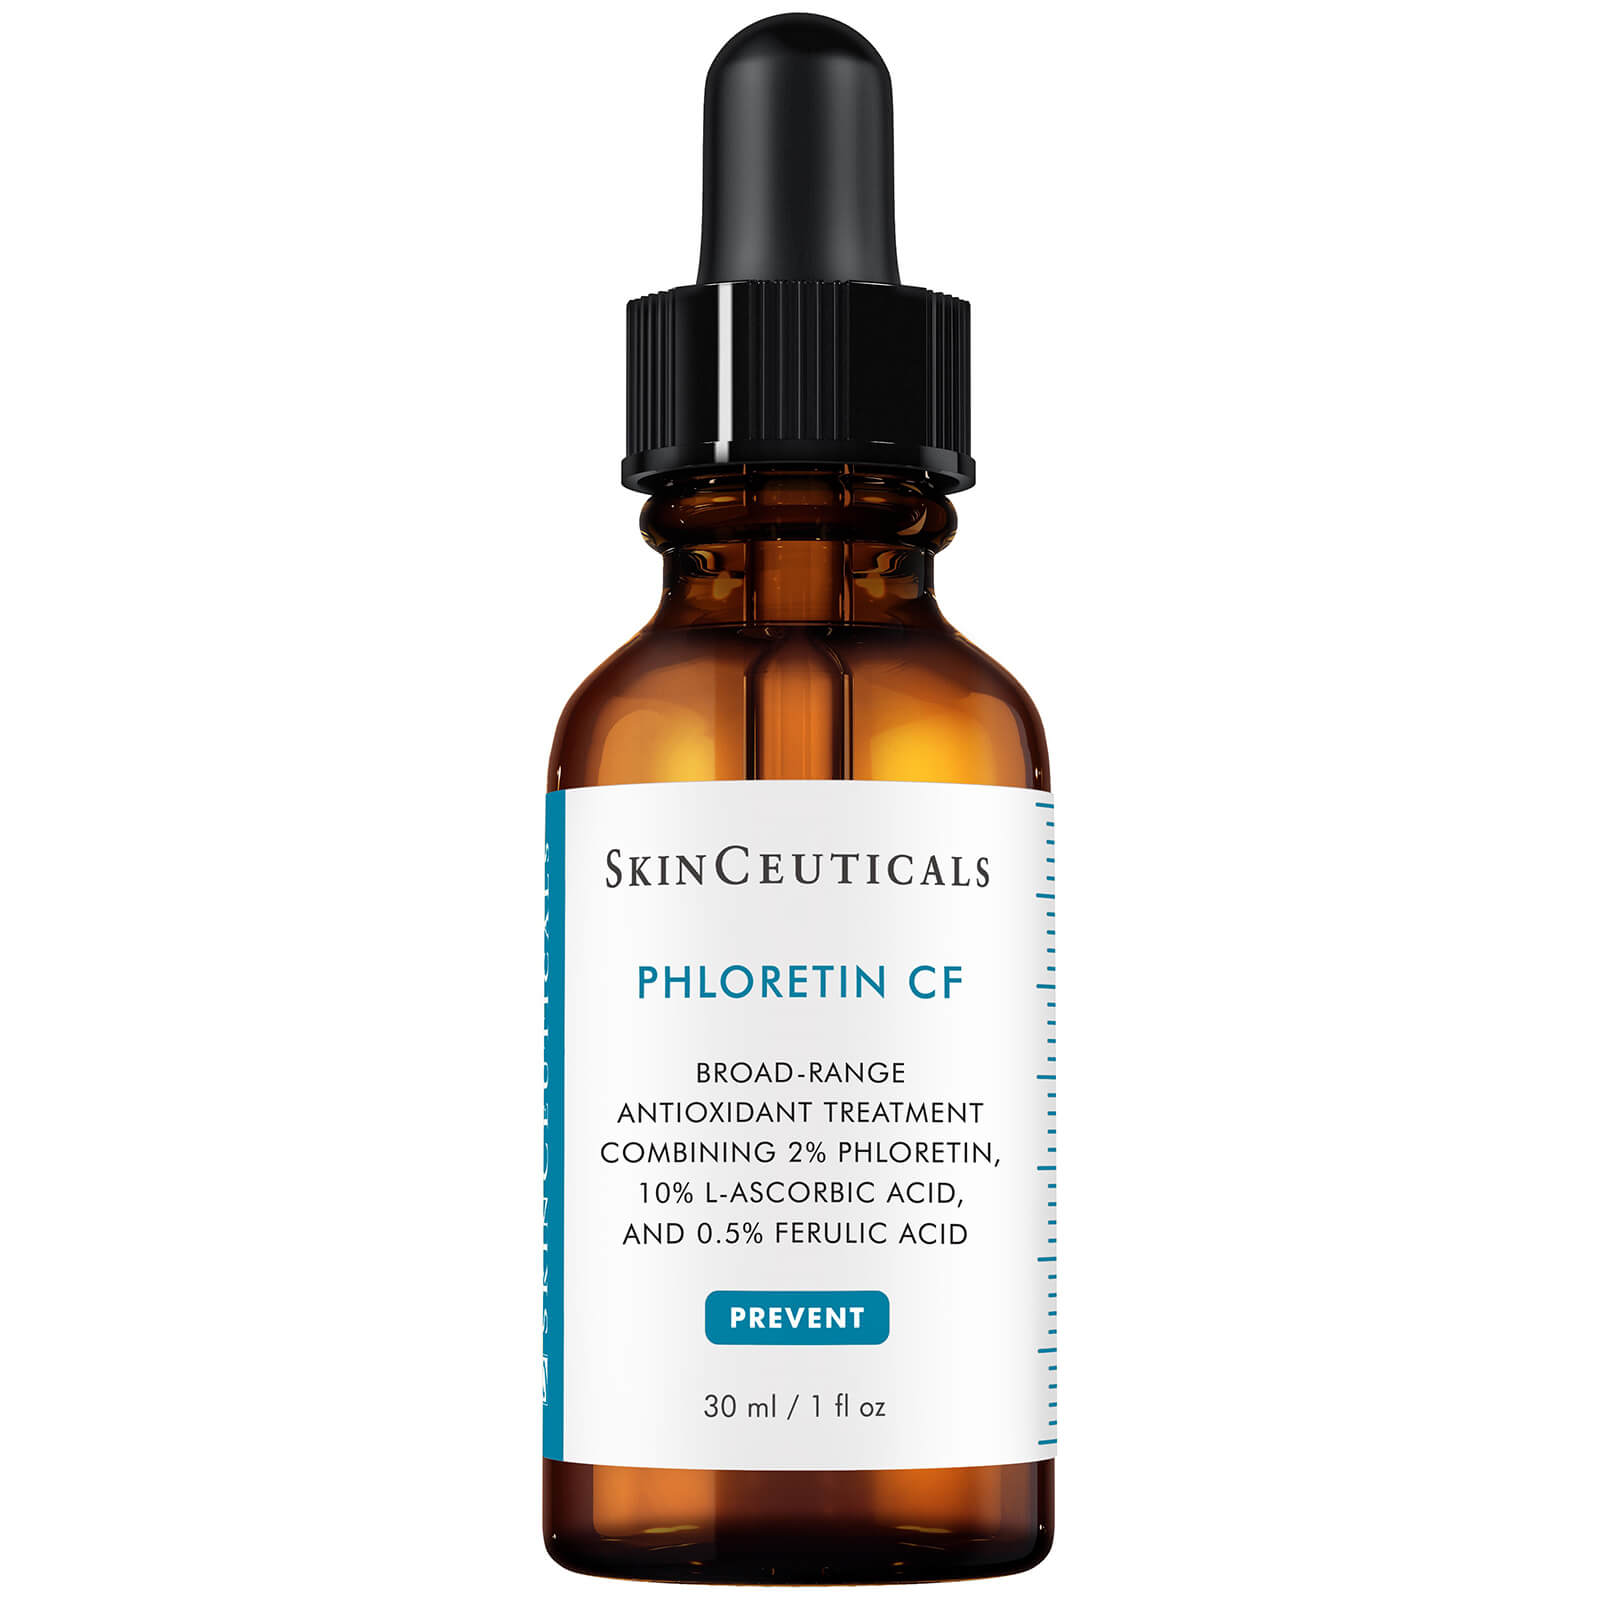 SKINCEUTICALS PHLORETIN CF 30 ML